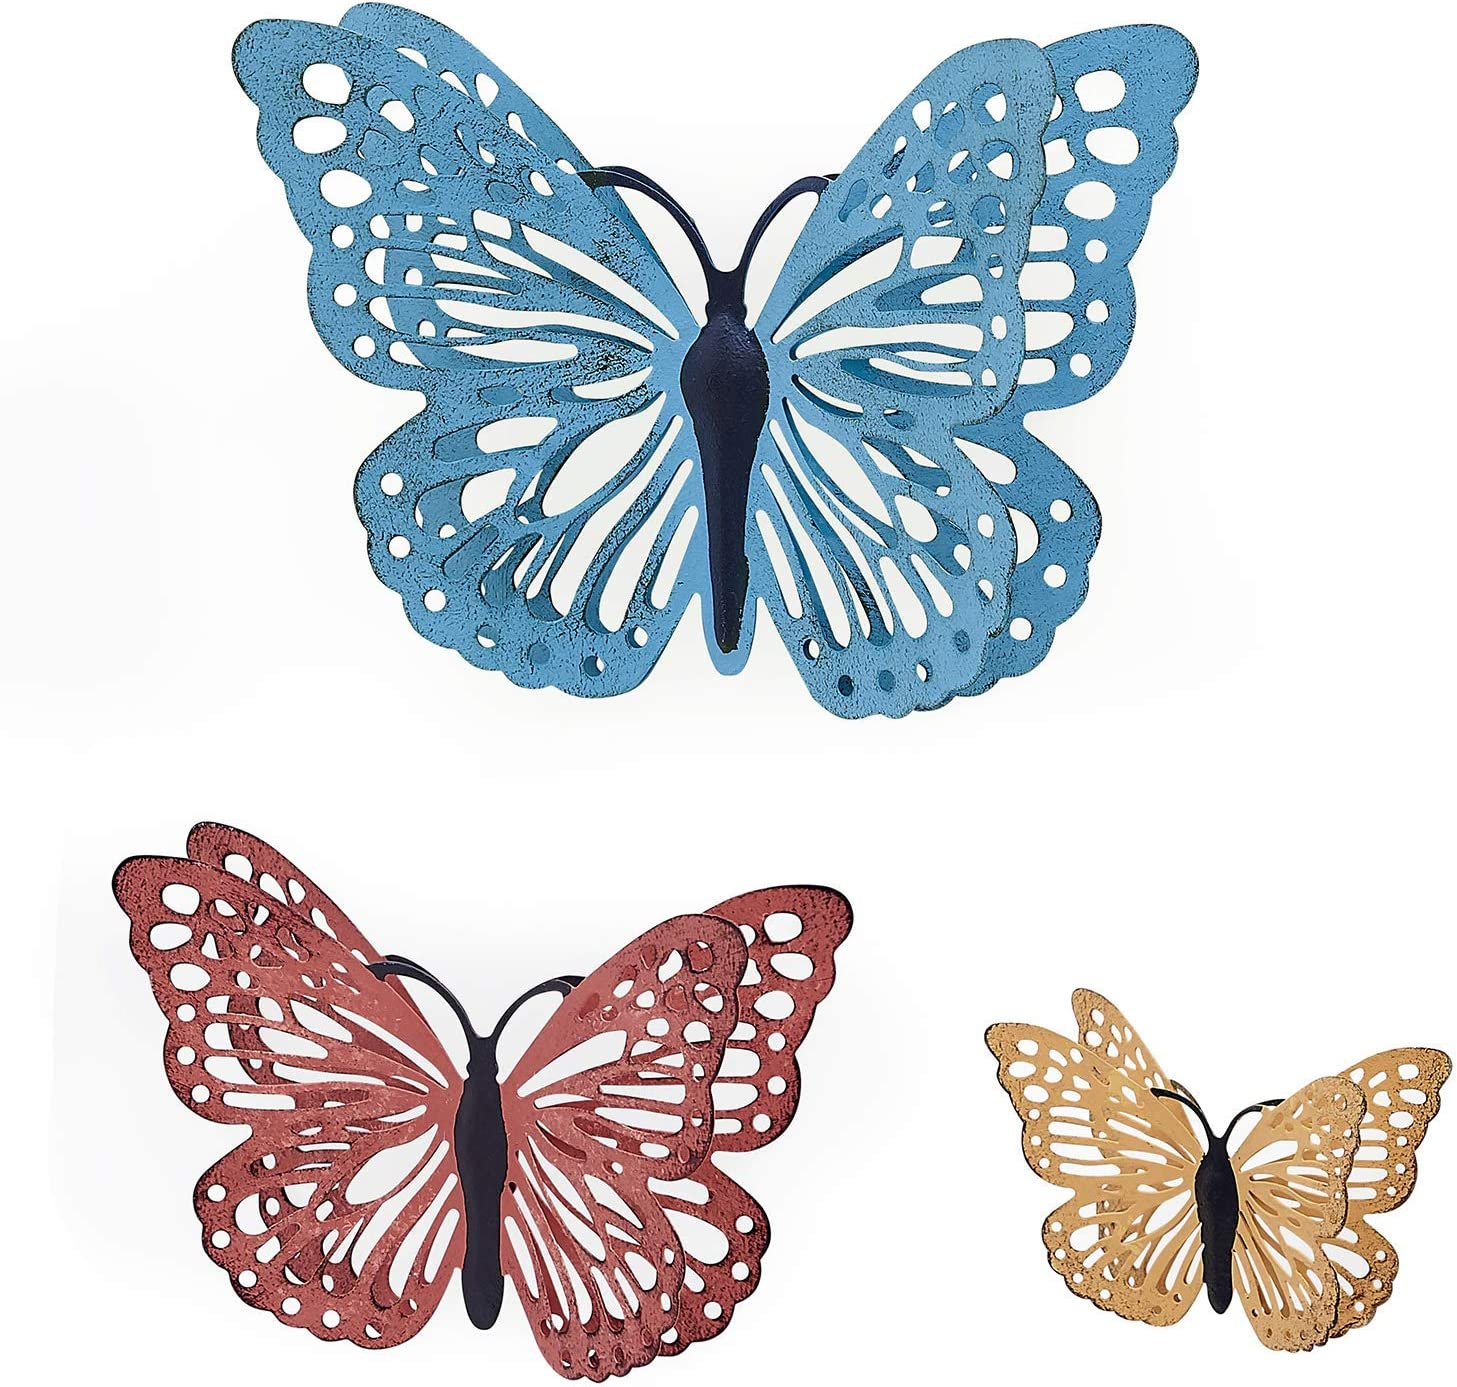 H HOMEBROAD. Metal Butterfly Wall Art, Hanging Wall Decor for Indoor and Outdoor Wall Sculptures, Set of 3